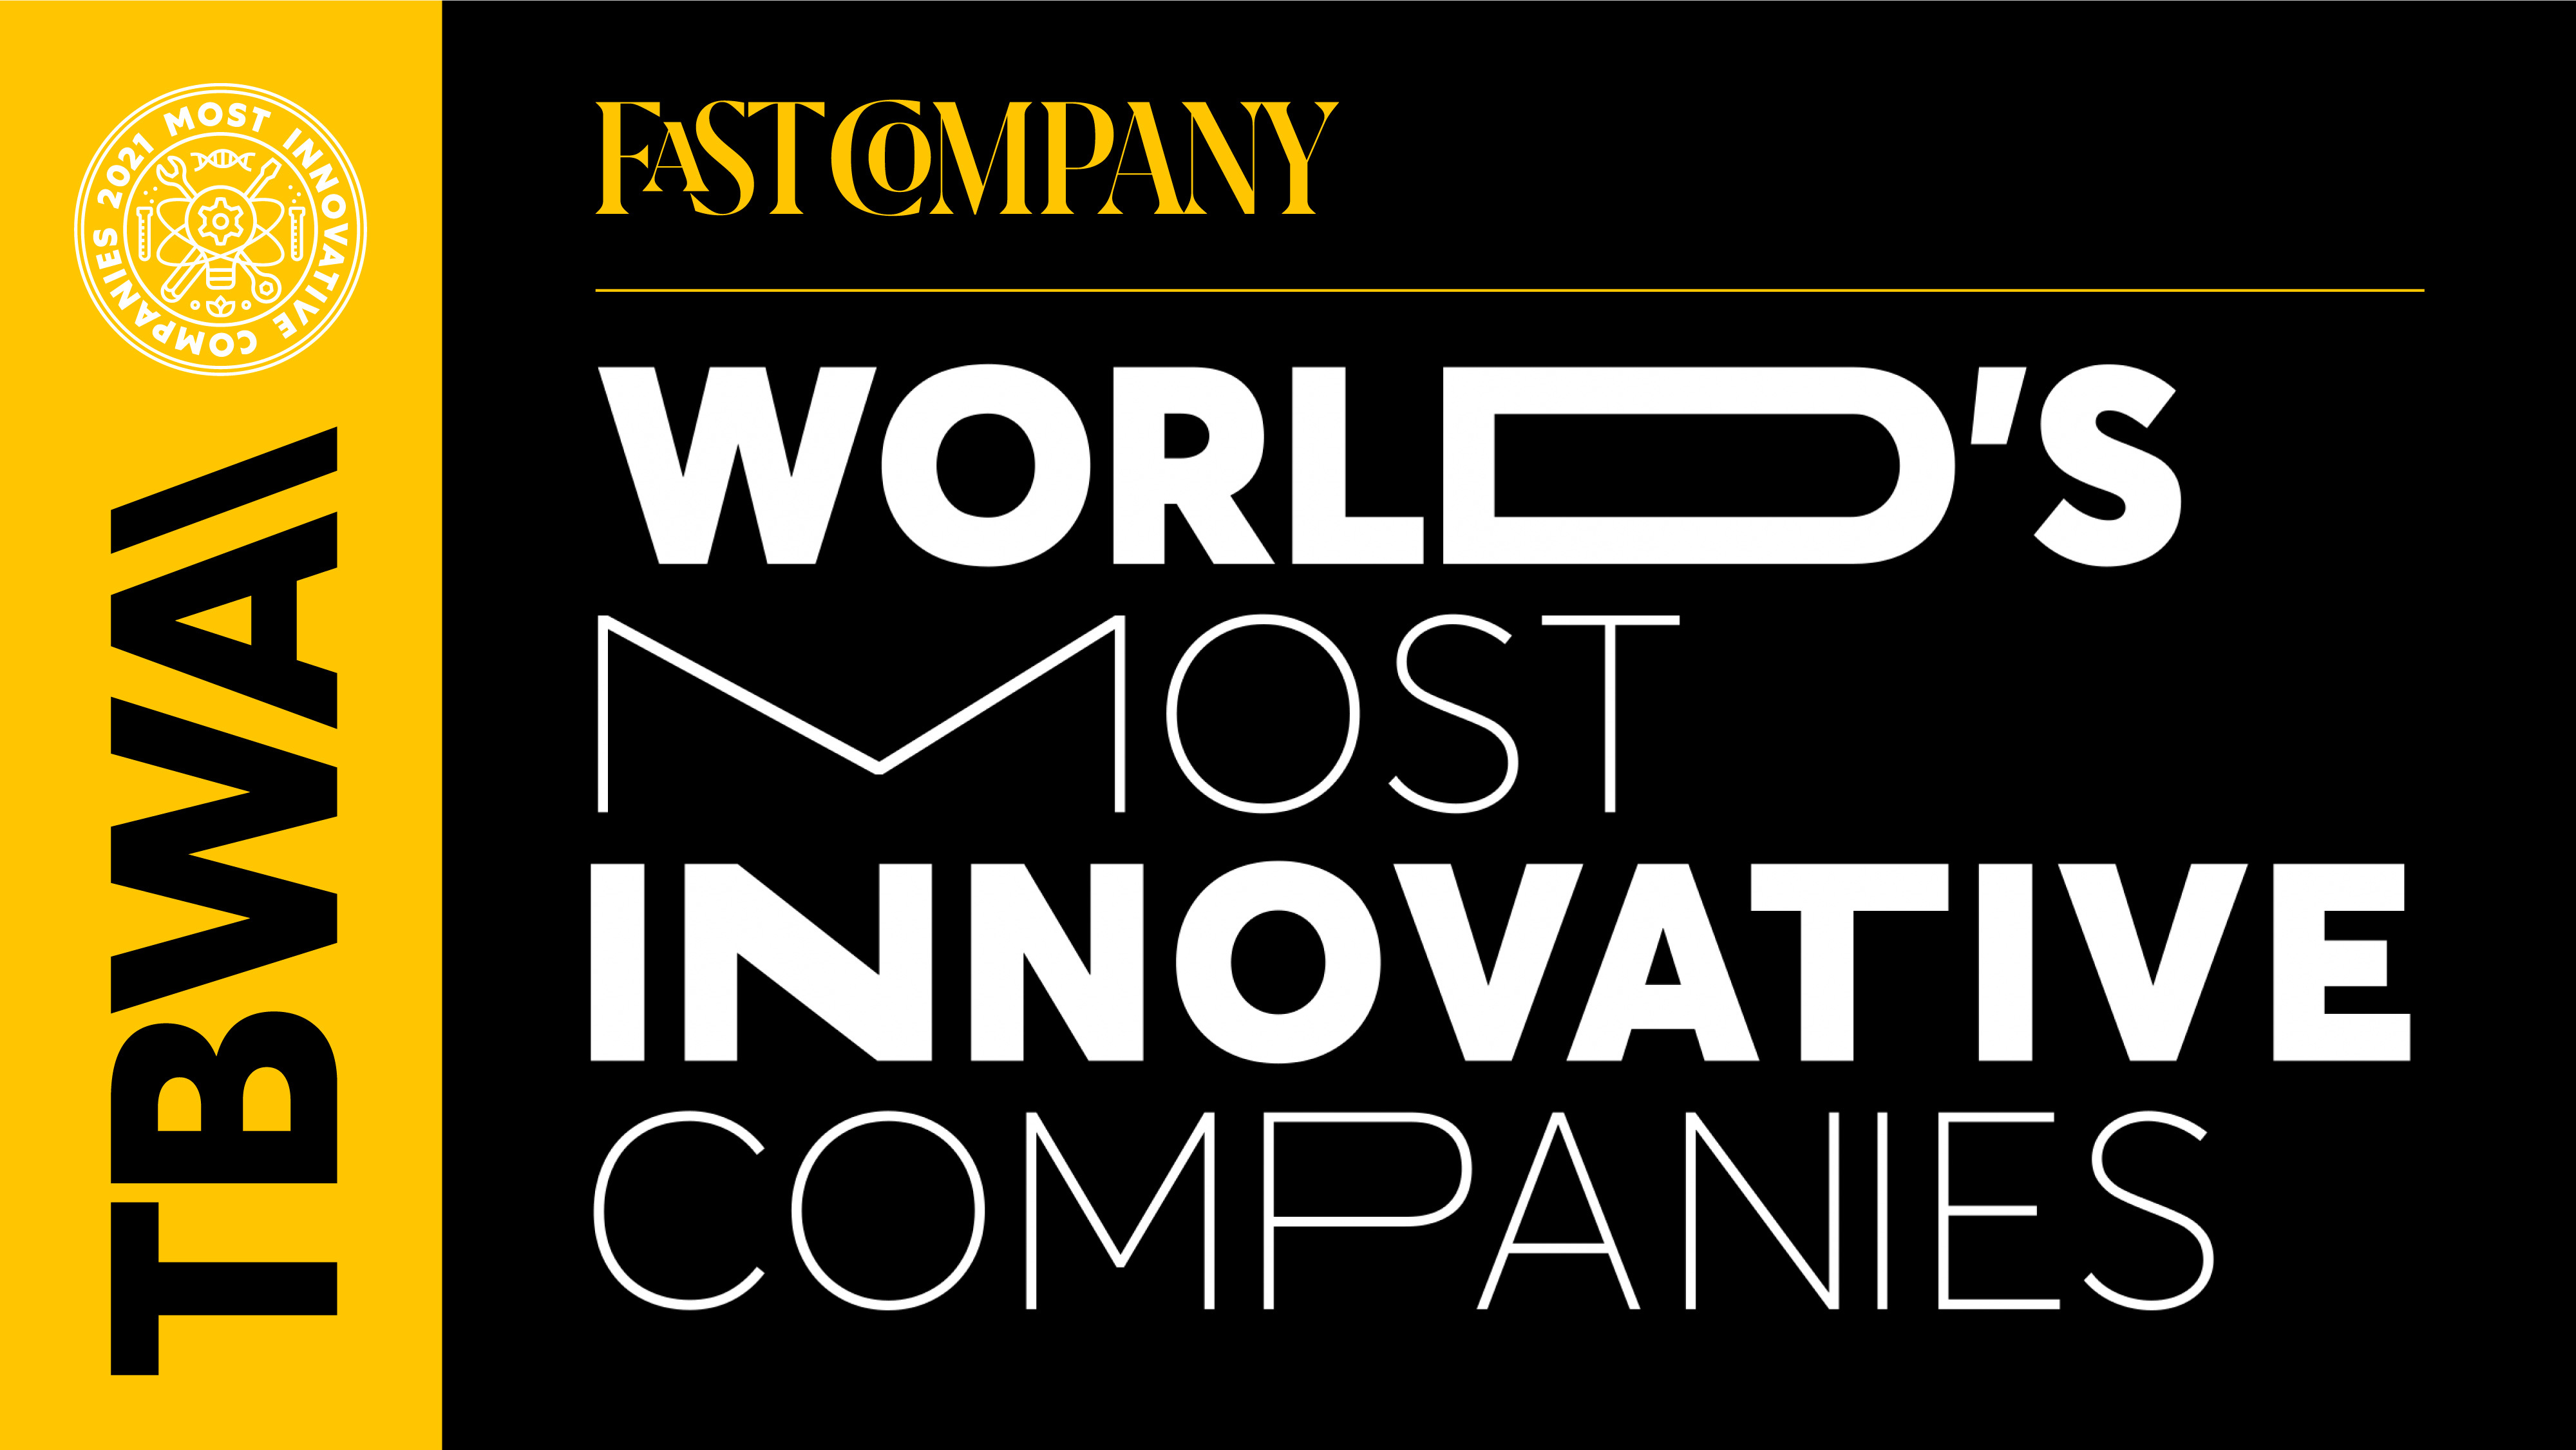 Fast Company Names TBWA One of the World's Most Innovative Companies for the Third Year in a Row